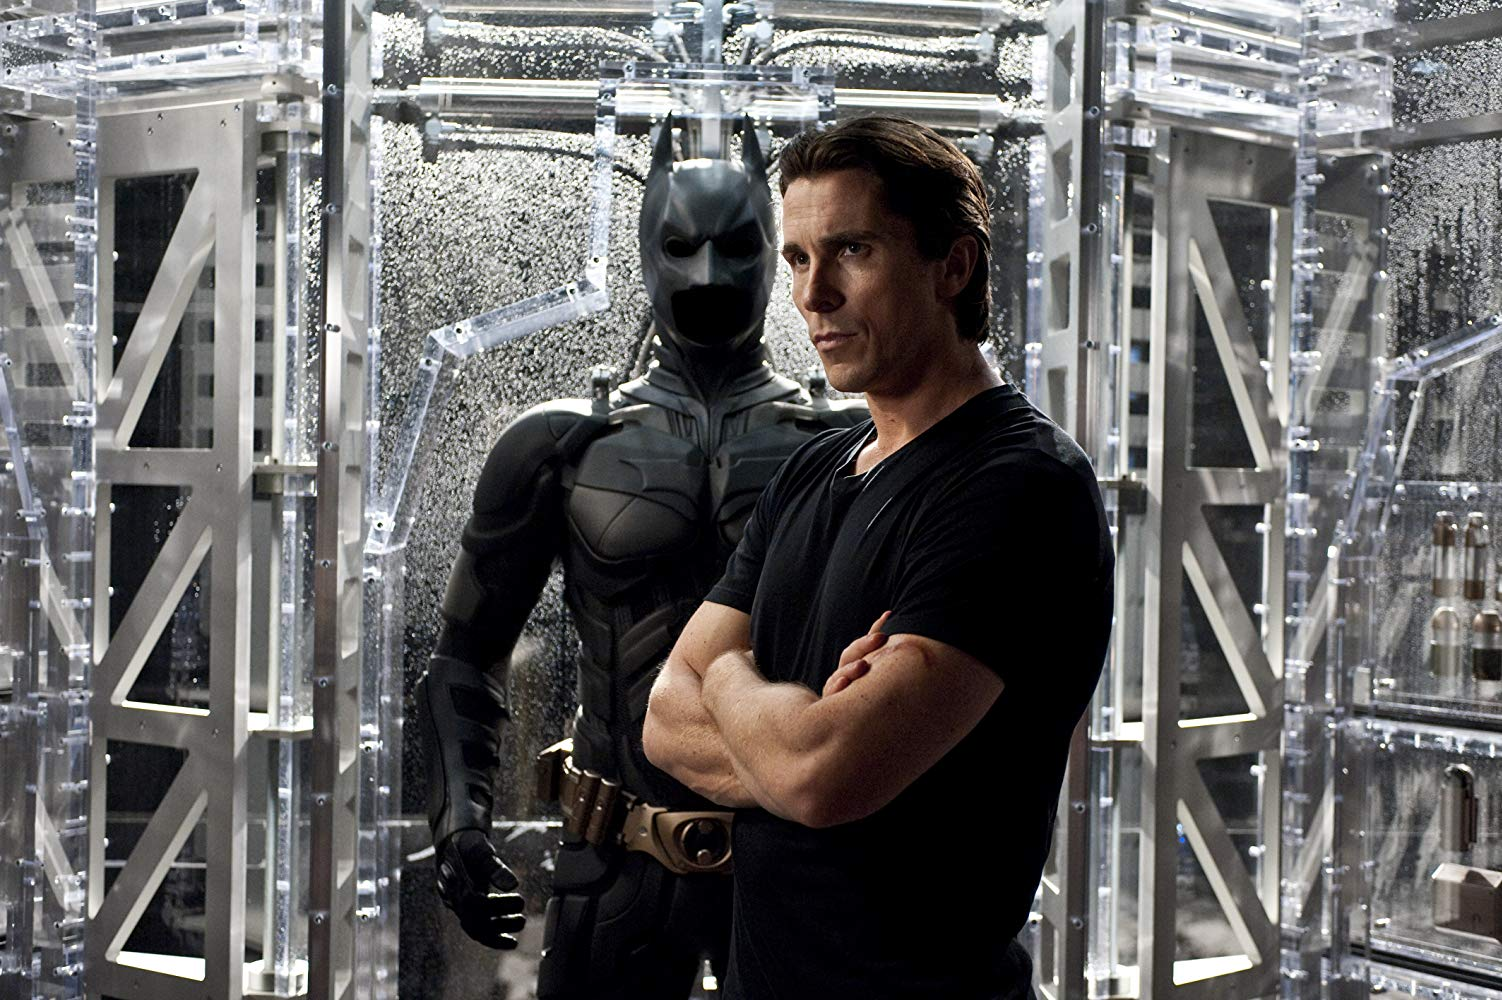 Christian Bale and Batman costume in The Dark Knight (2008)